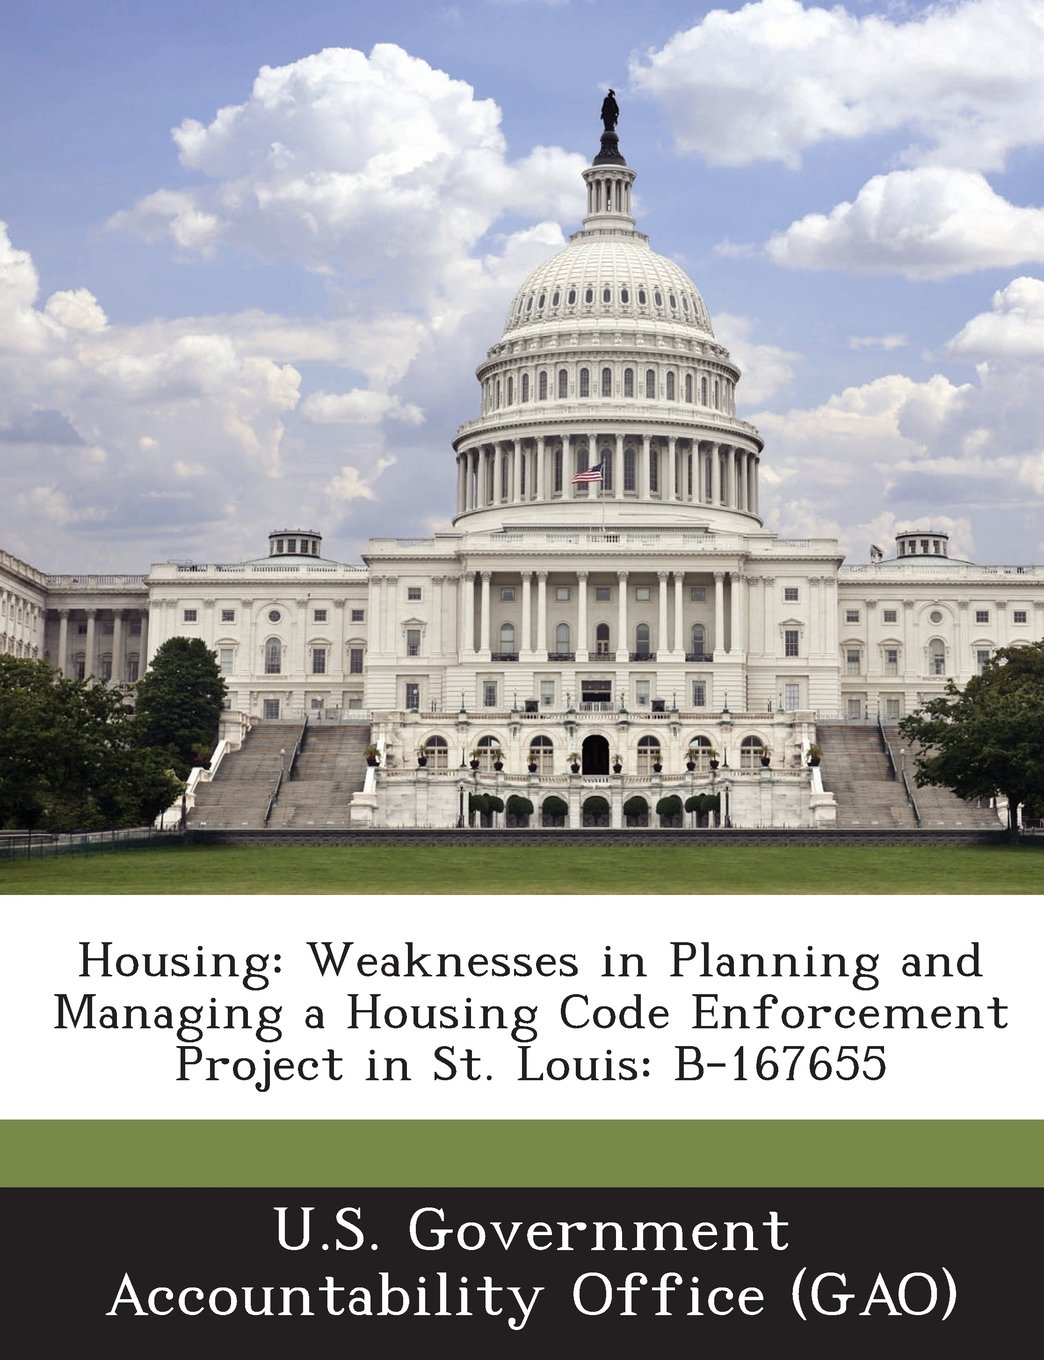 Download Housing: Weaknesses in Planning and Managing a Housing Code Enforcement Project in St. Louis: B-167655 PDF